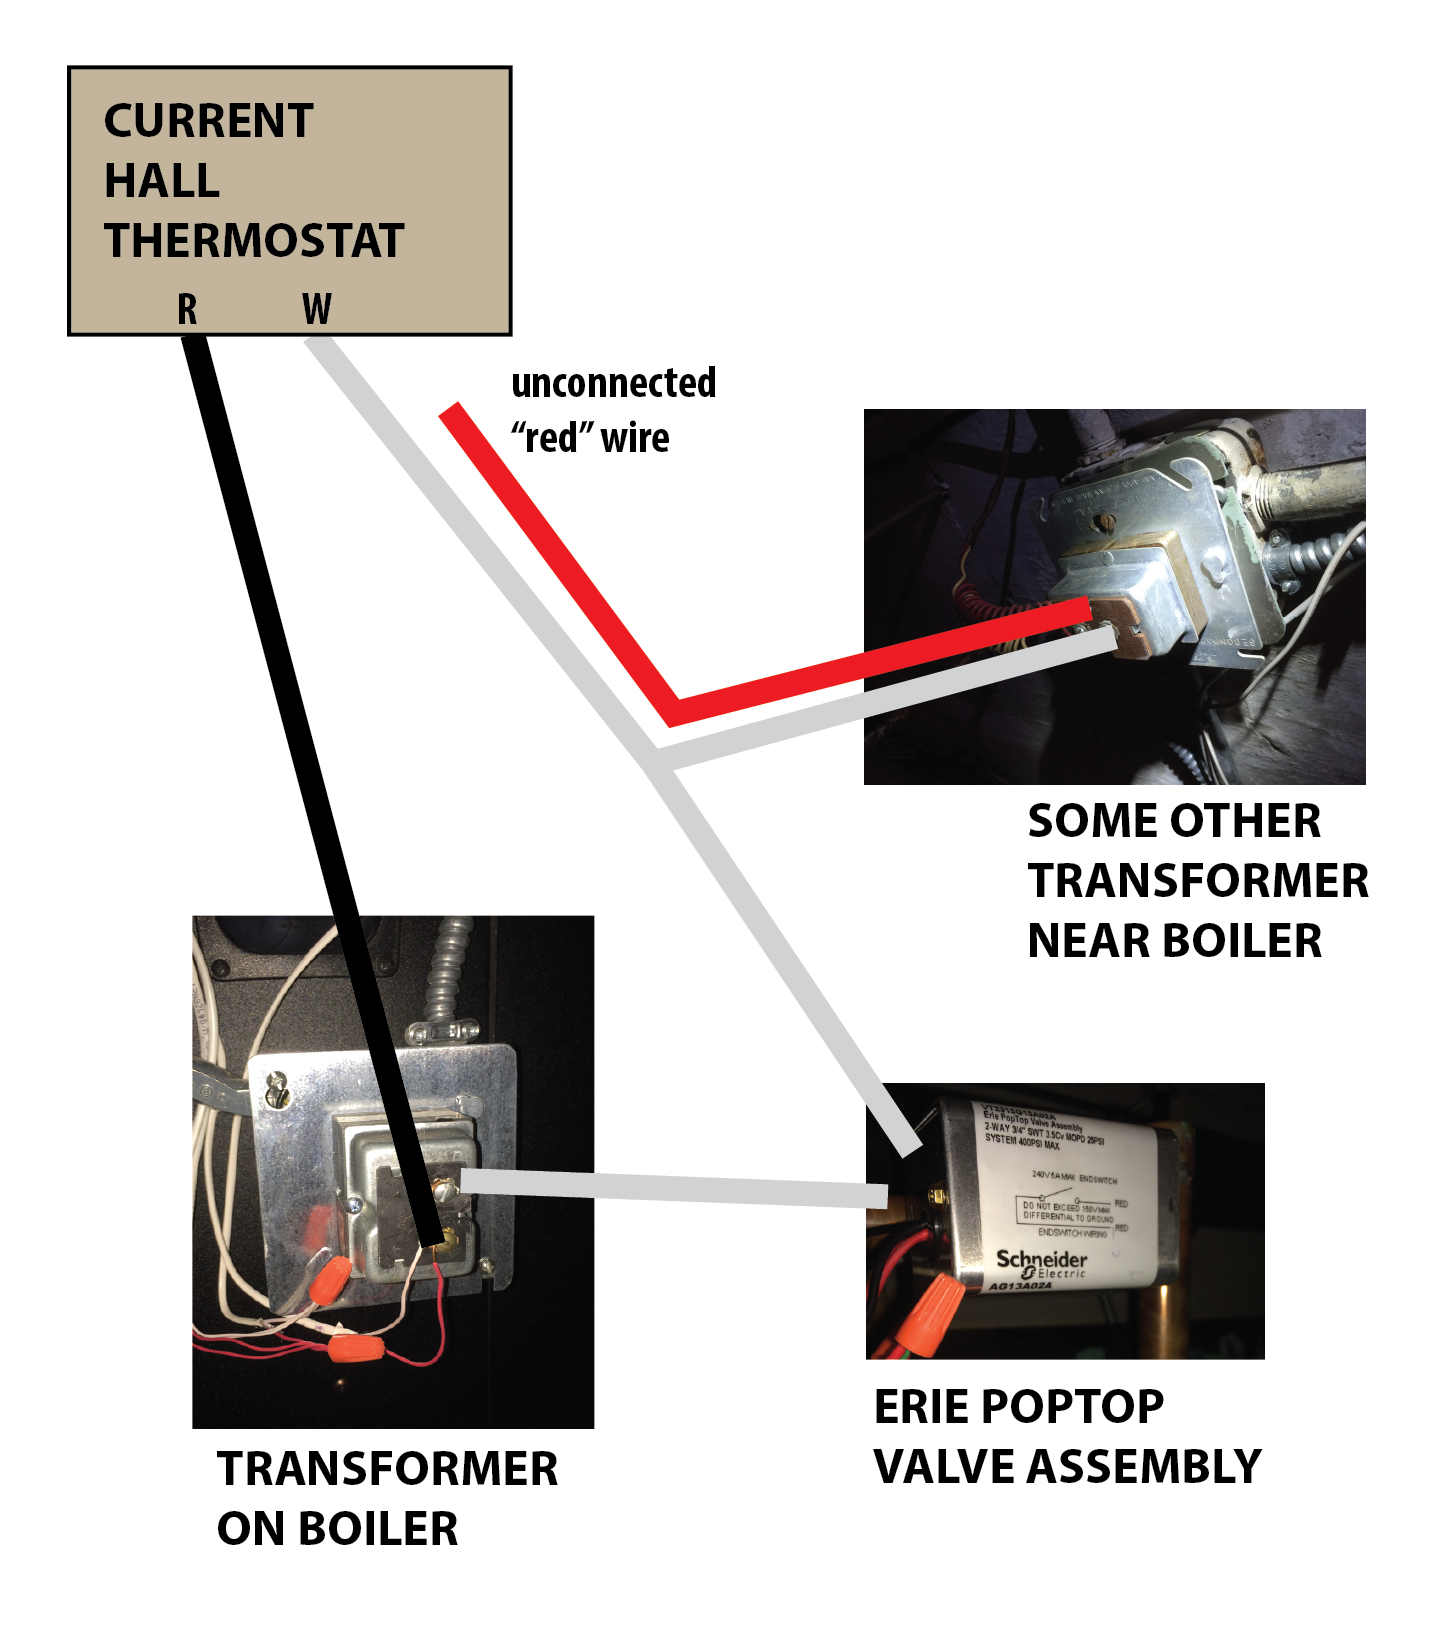 Help With Adding A C Wire For Smart Thermostat Heating The Caleffi Zone Valve Wiring Diagram 2